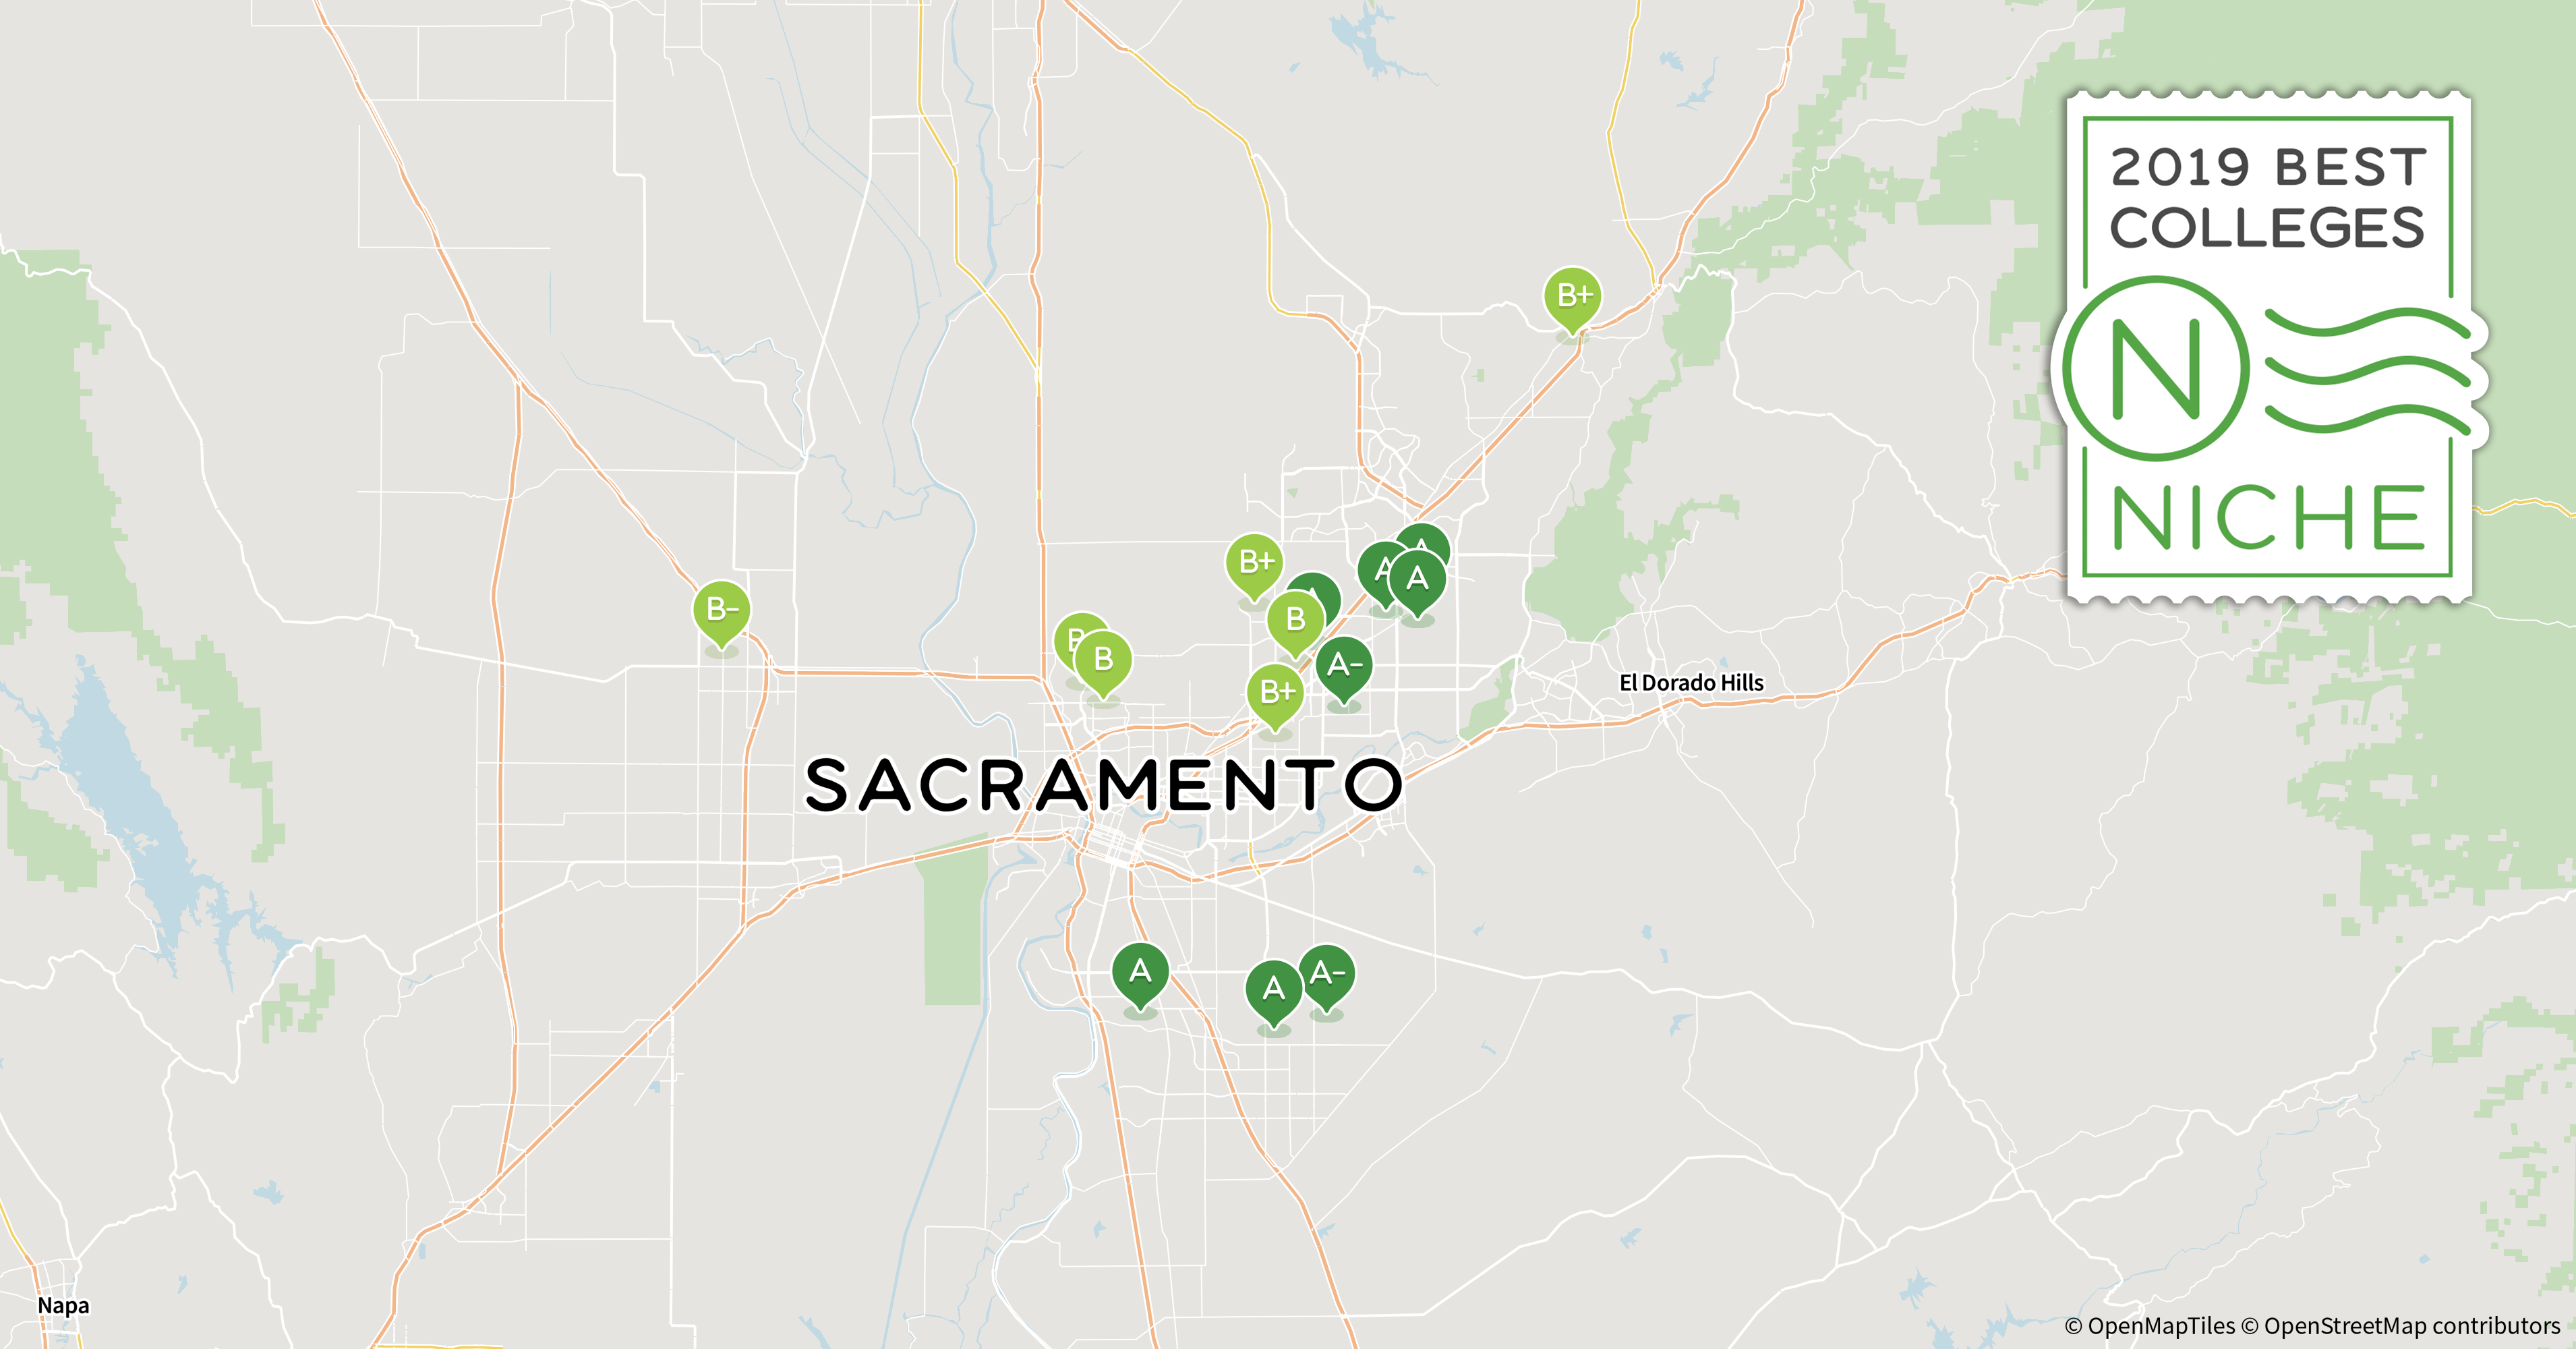 Colleges In Sacramento >> 2019 Top Colleges For Veterinary Studies In Sacramento Area Niche